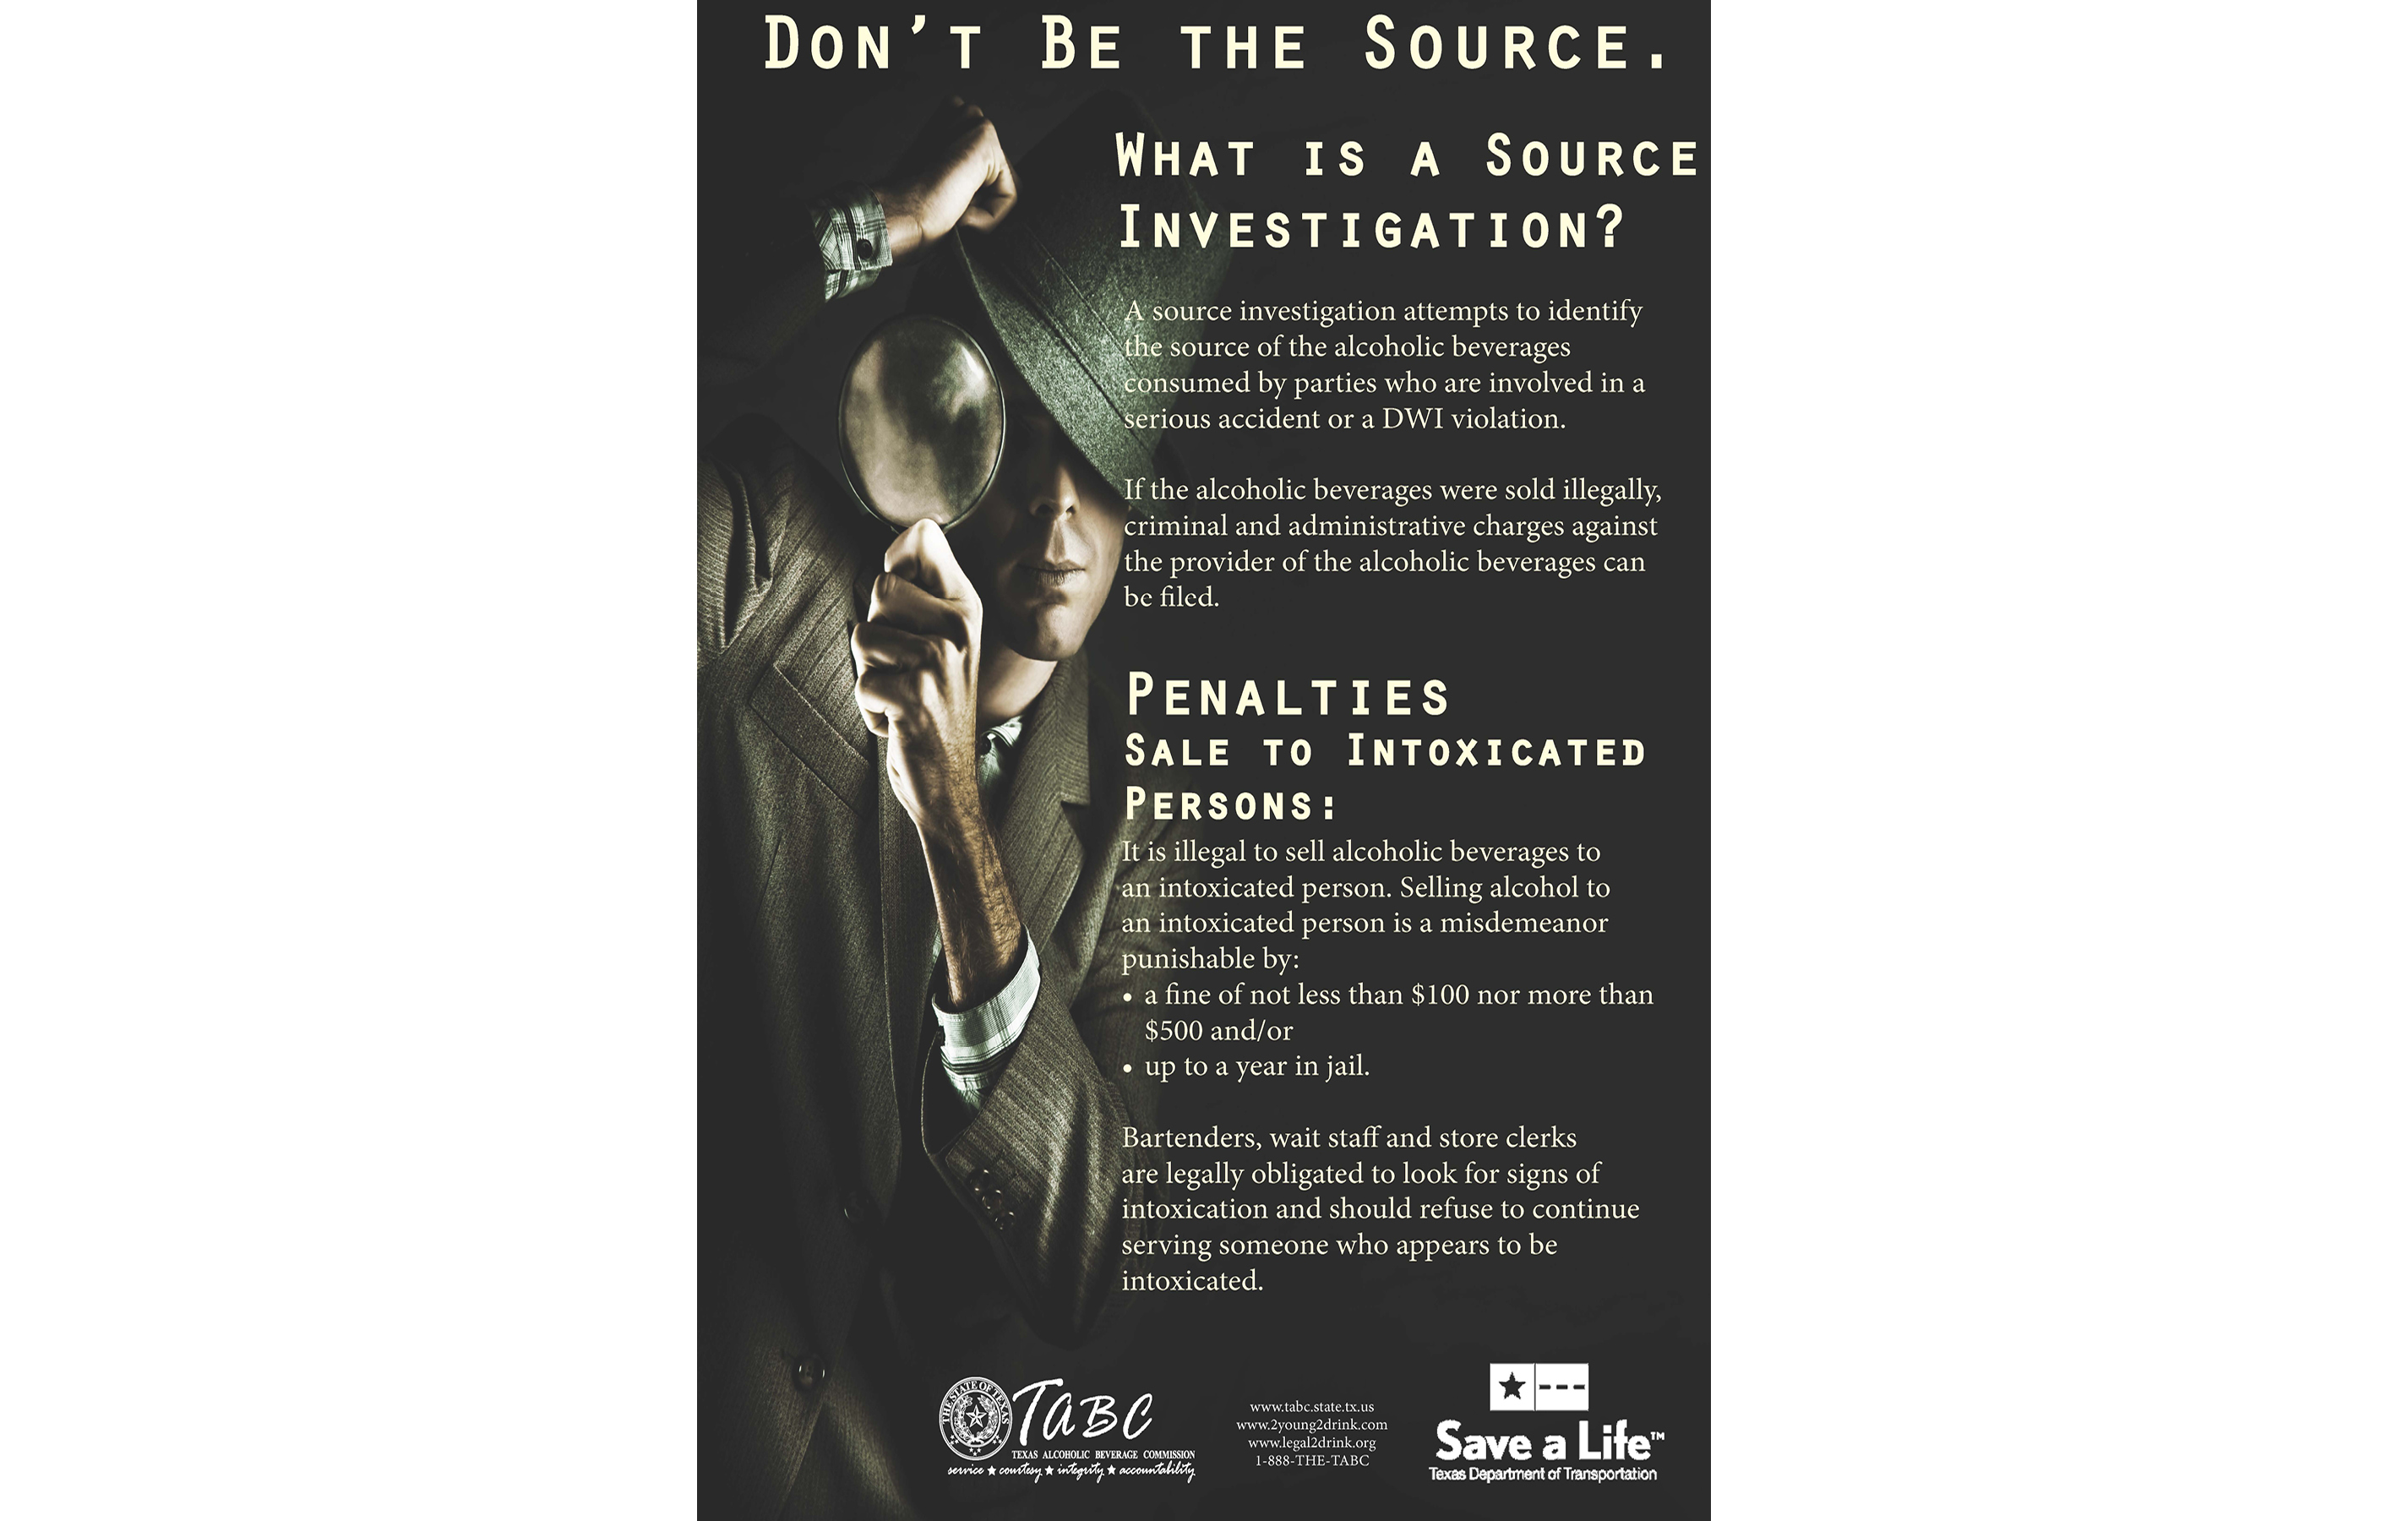 Don't Be The Source Poster